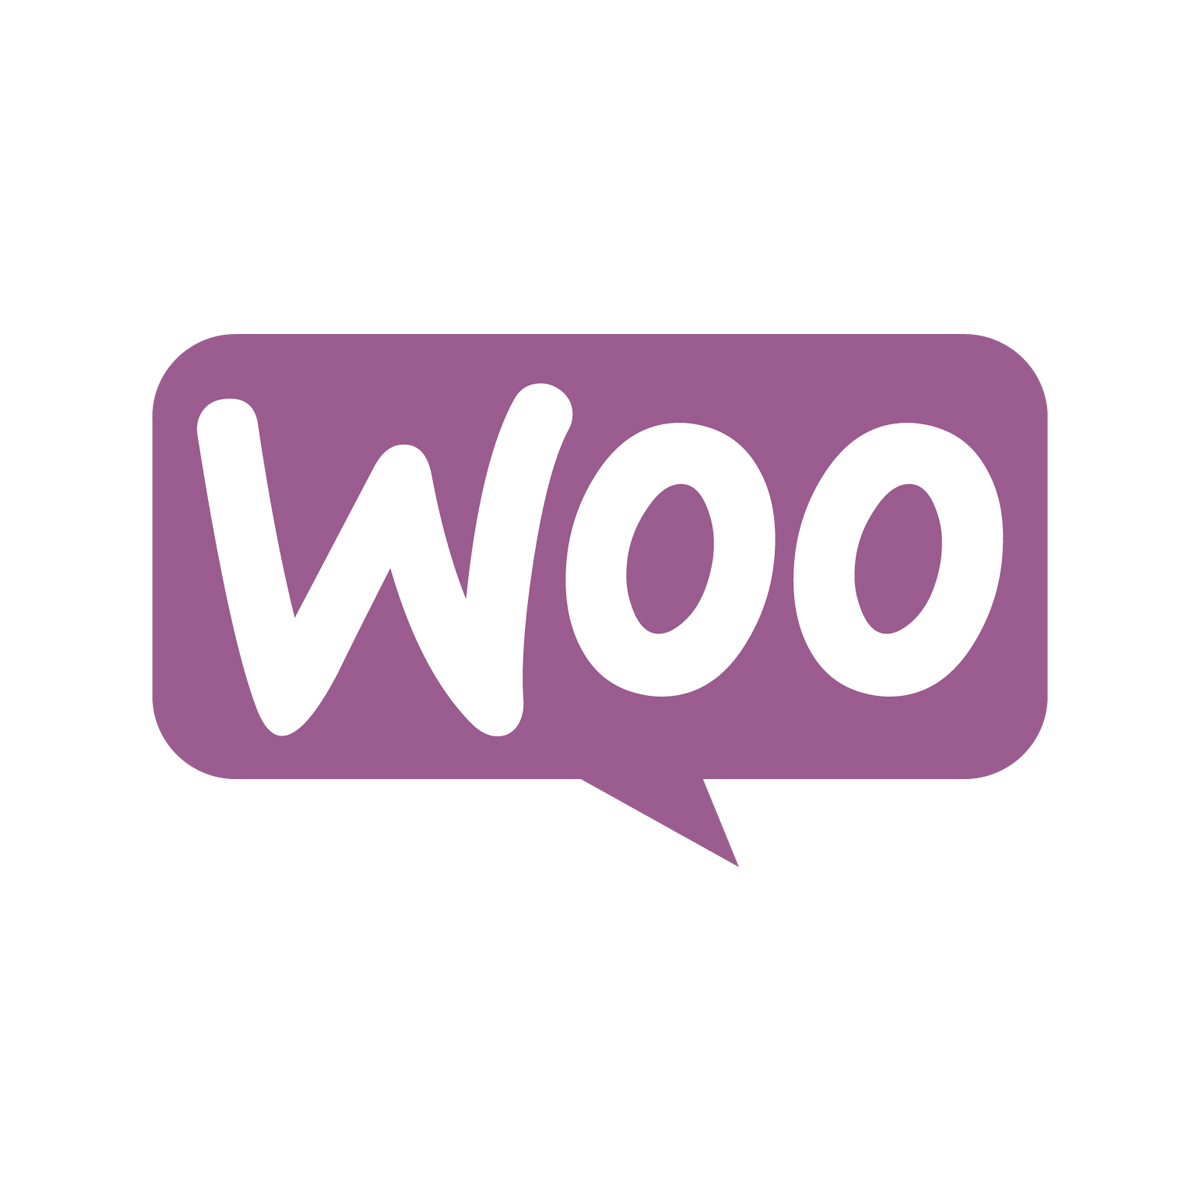 WooCommerce - HOW Your orders are createdOption 01 WOYC Designer ToolOption 02 Print On Demand (POD)Option 03 Pre-sized Art (external URL)WHAT You getWOYC WooCommerce Plug-In